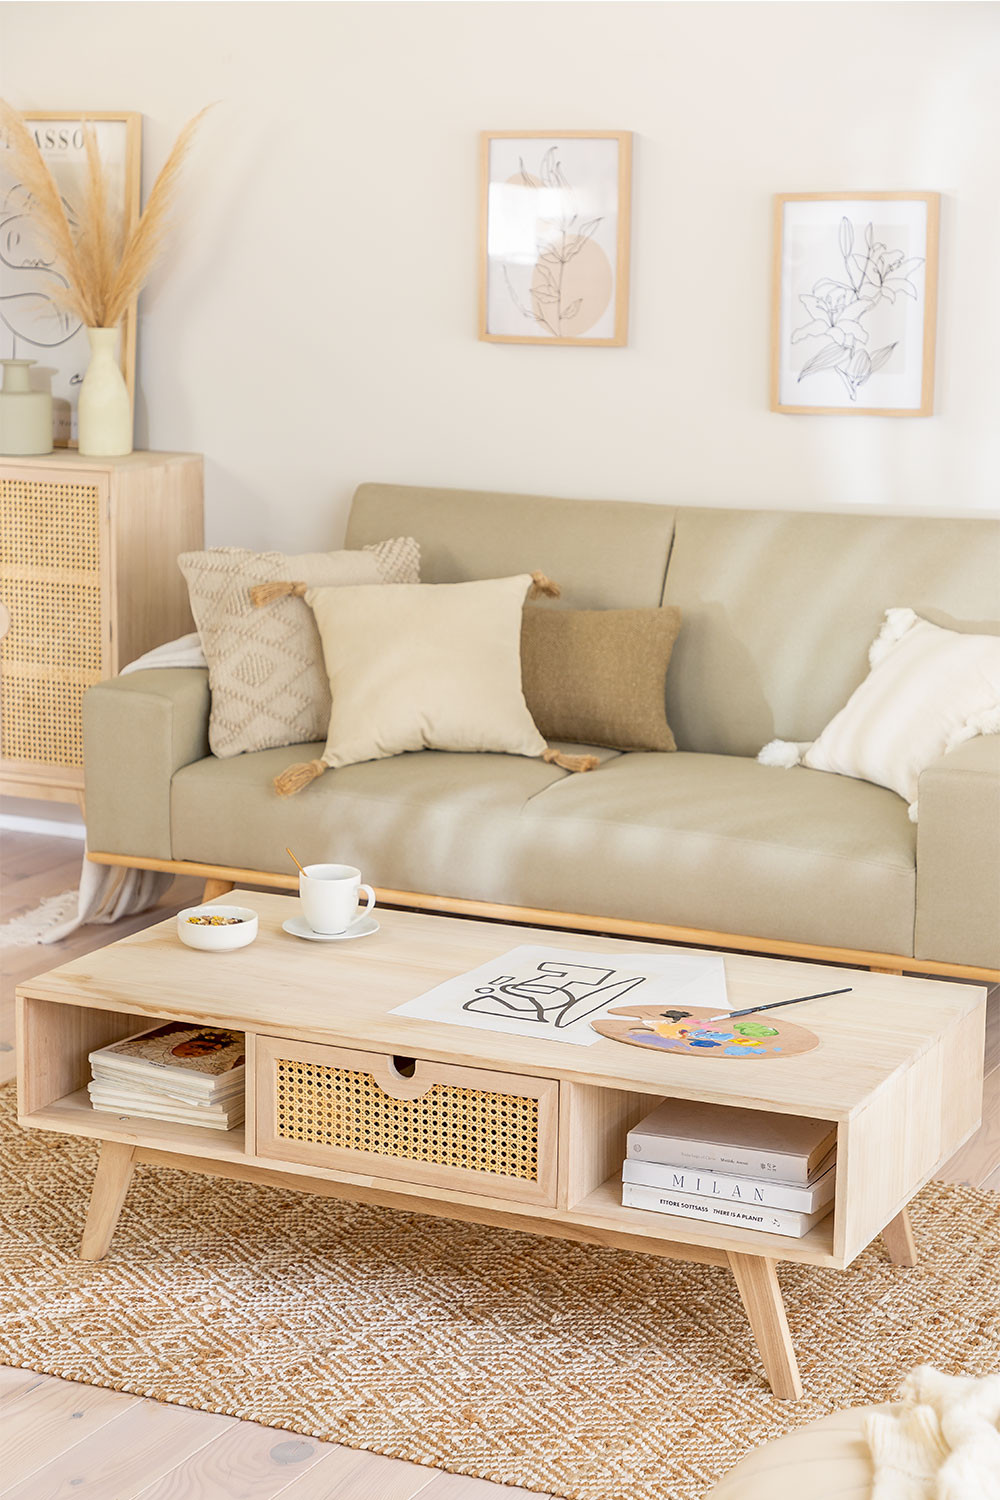 Wooden Coffee Table with Central Drawer Ralik Style, gallery image 1